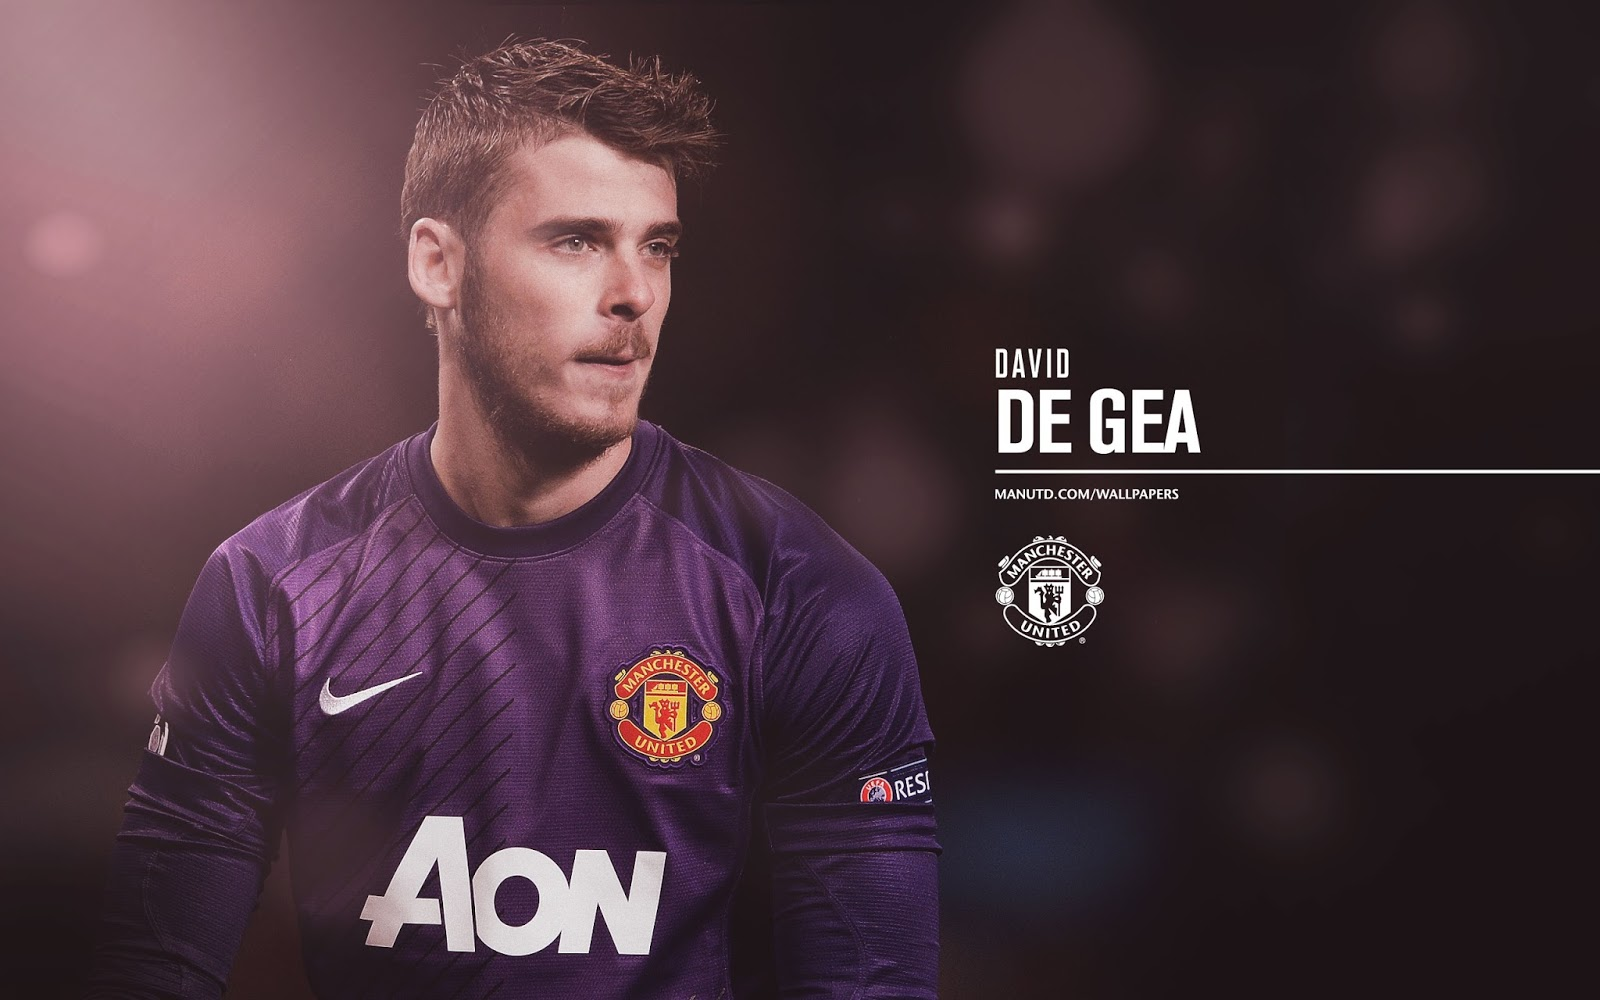 Wallpaper_David_De_Gea_Manchester_United_Ungu